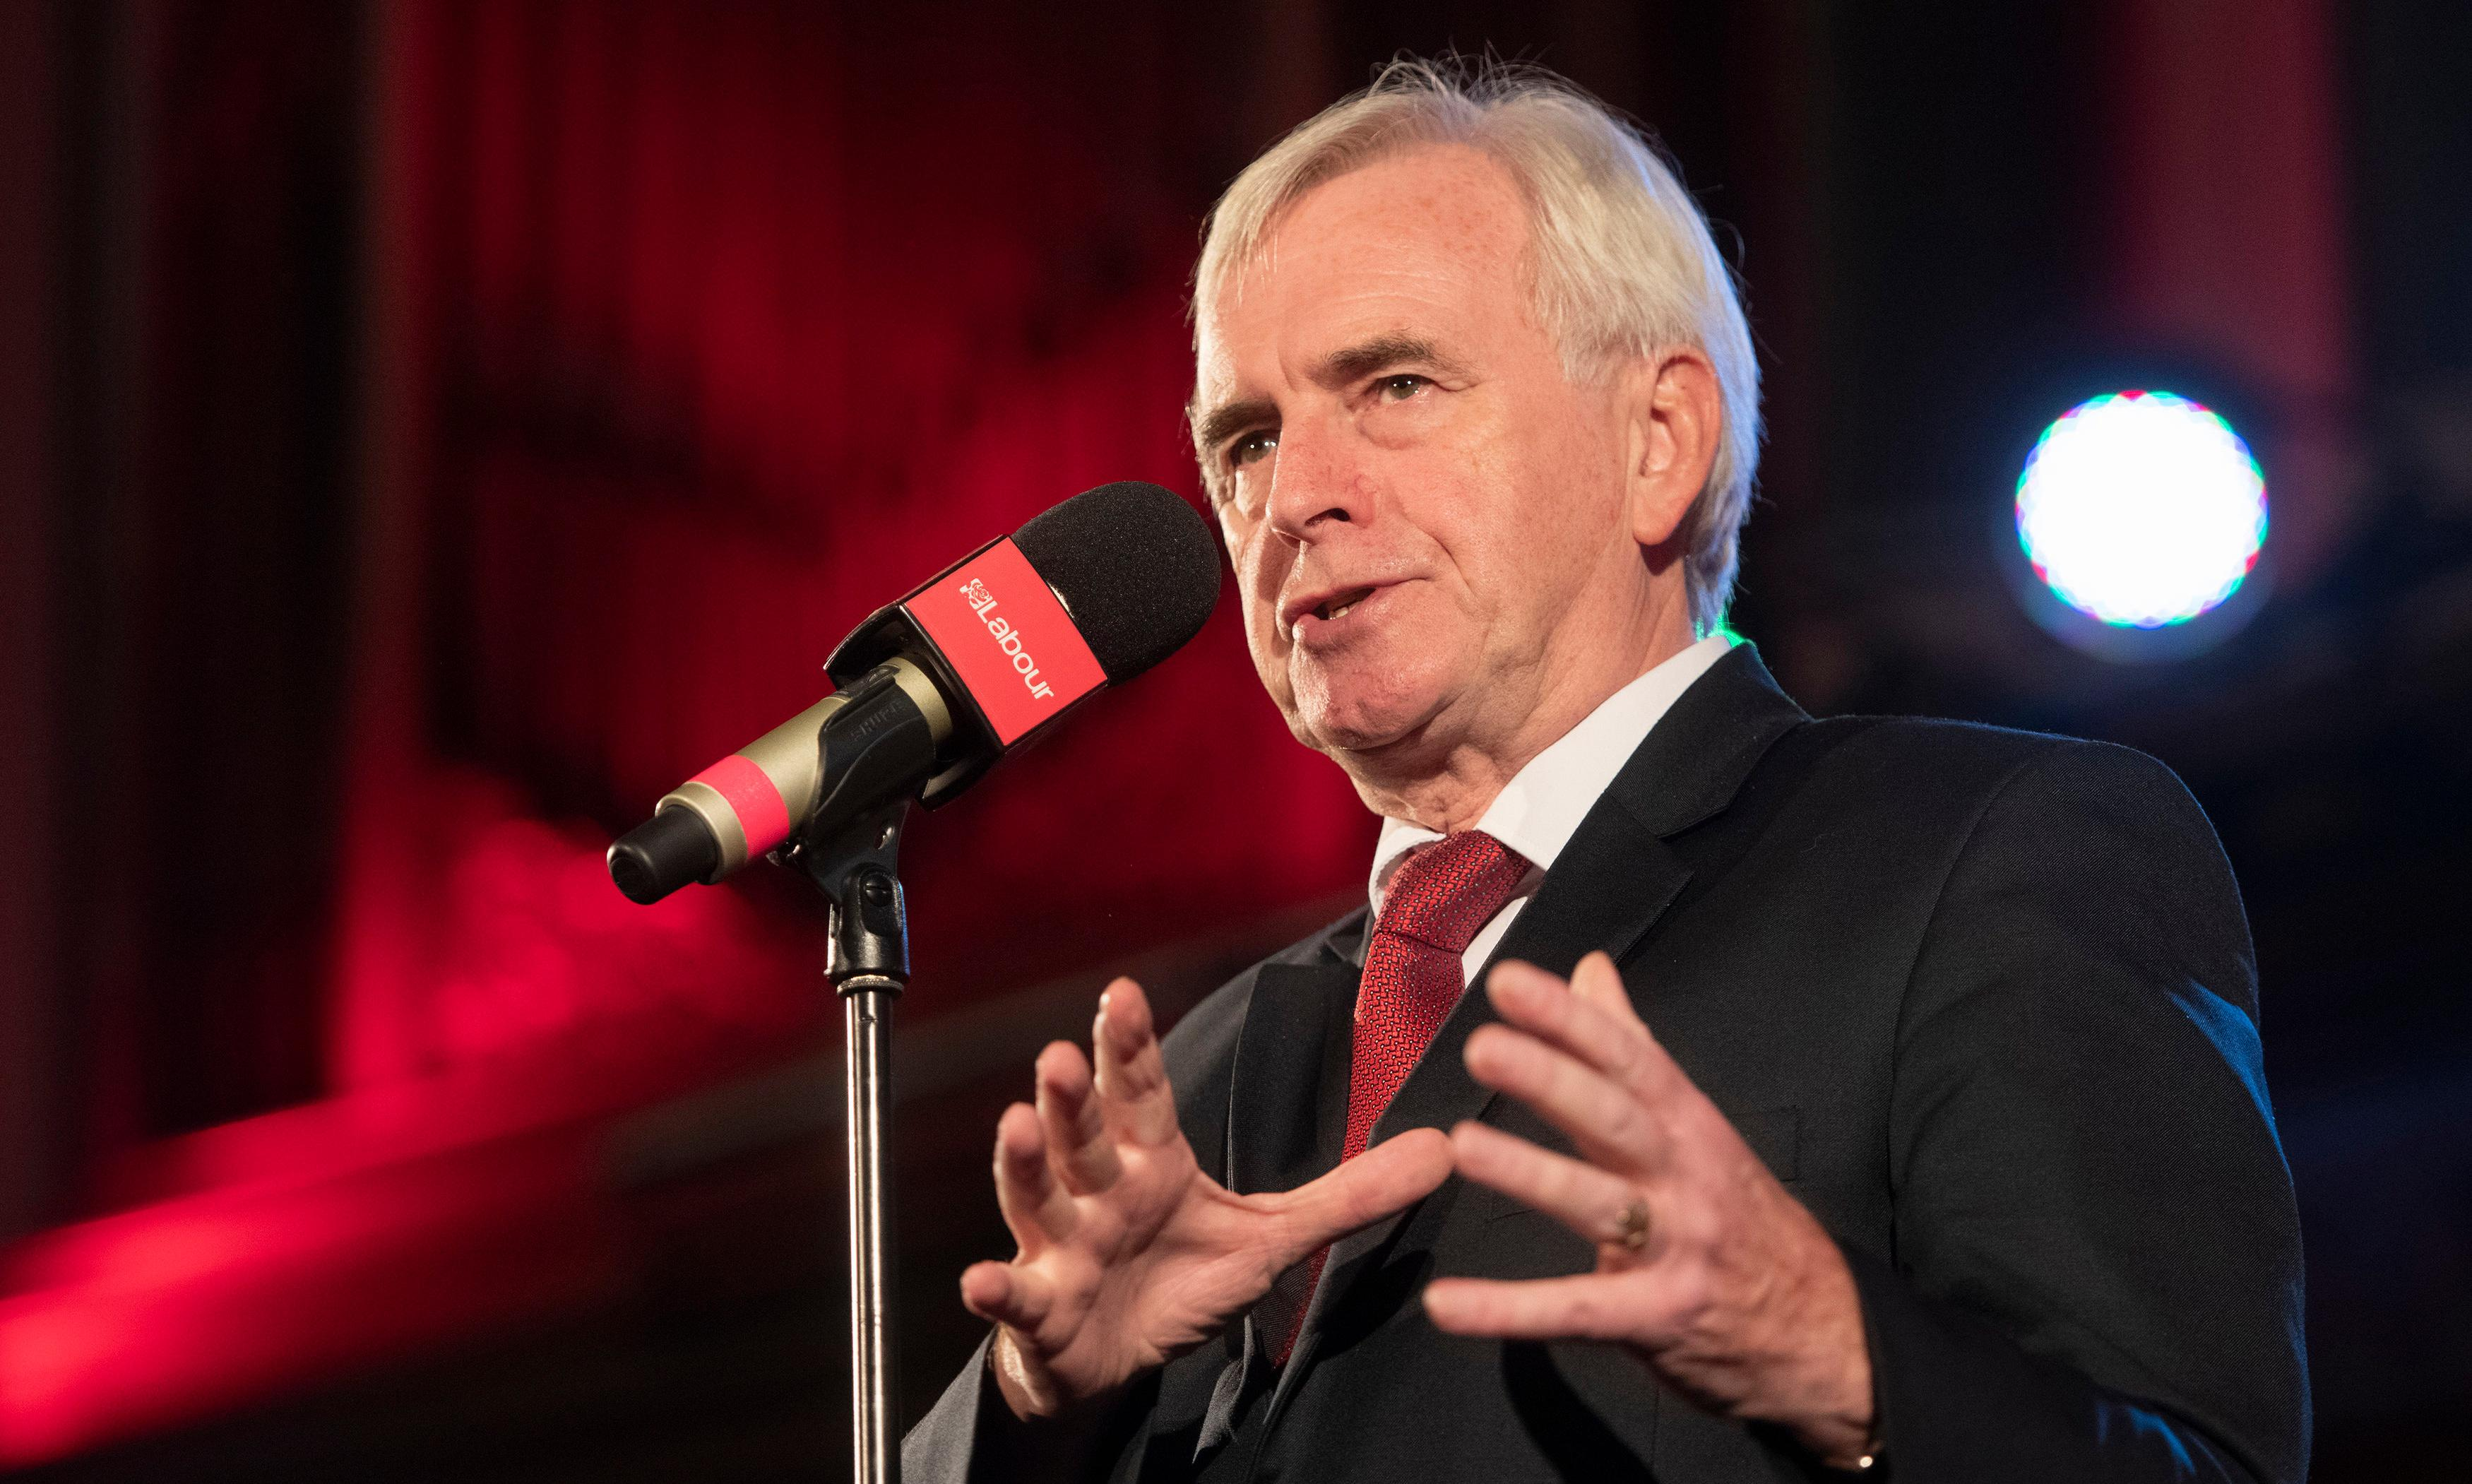 McDonnell to address People's Vote rally as Heseltine urges Tories to reject Brexit deal